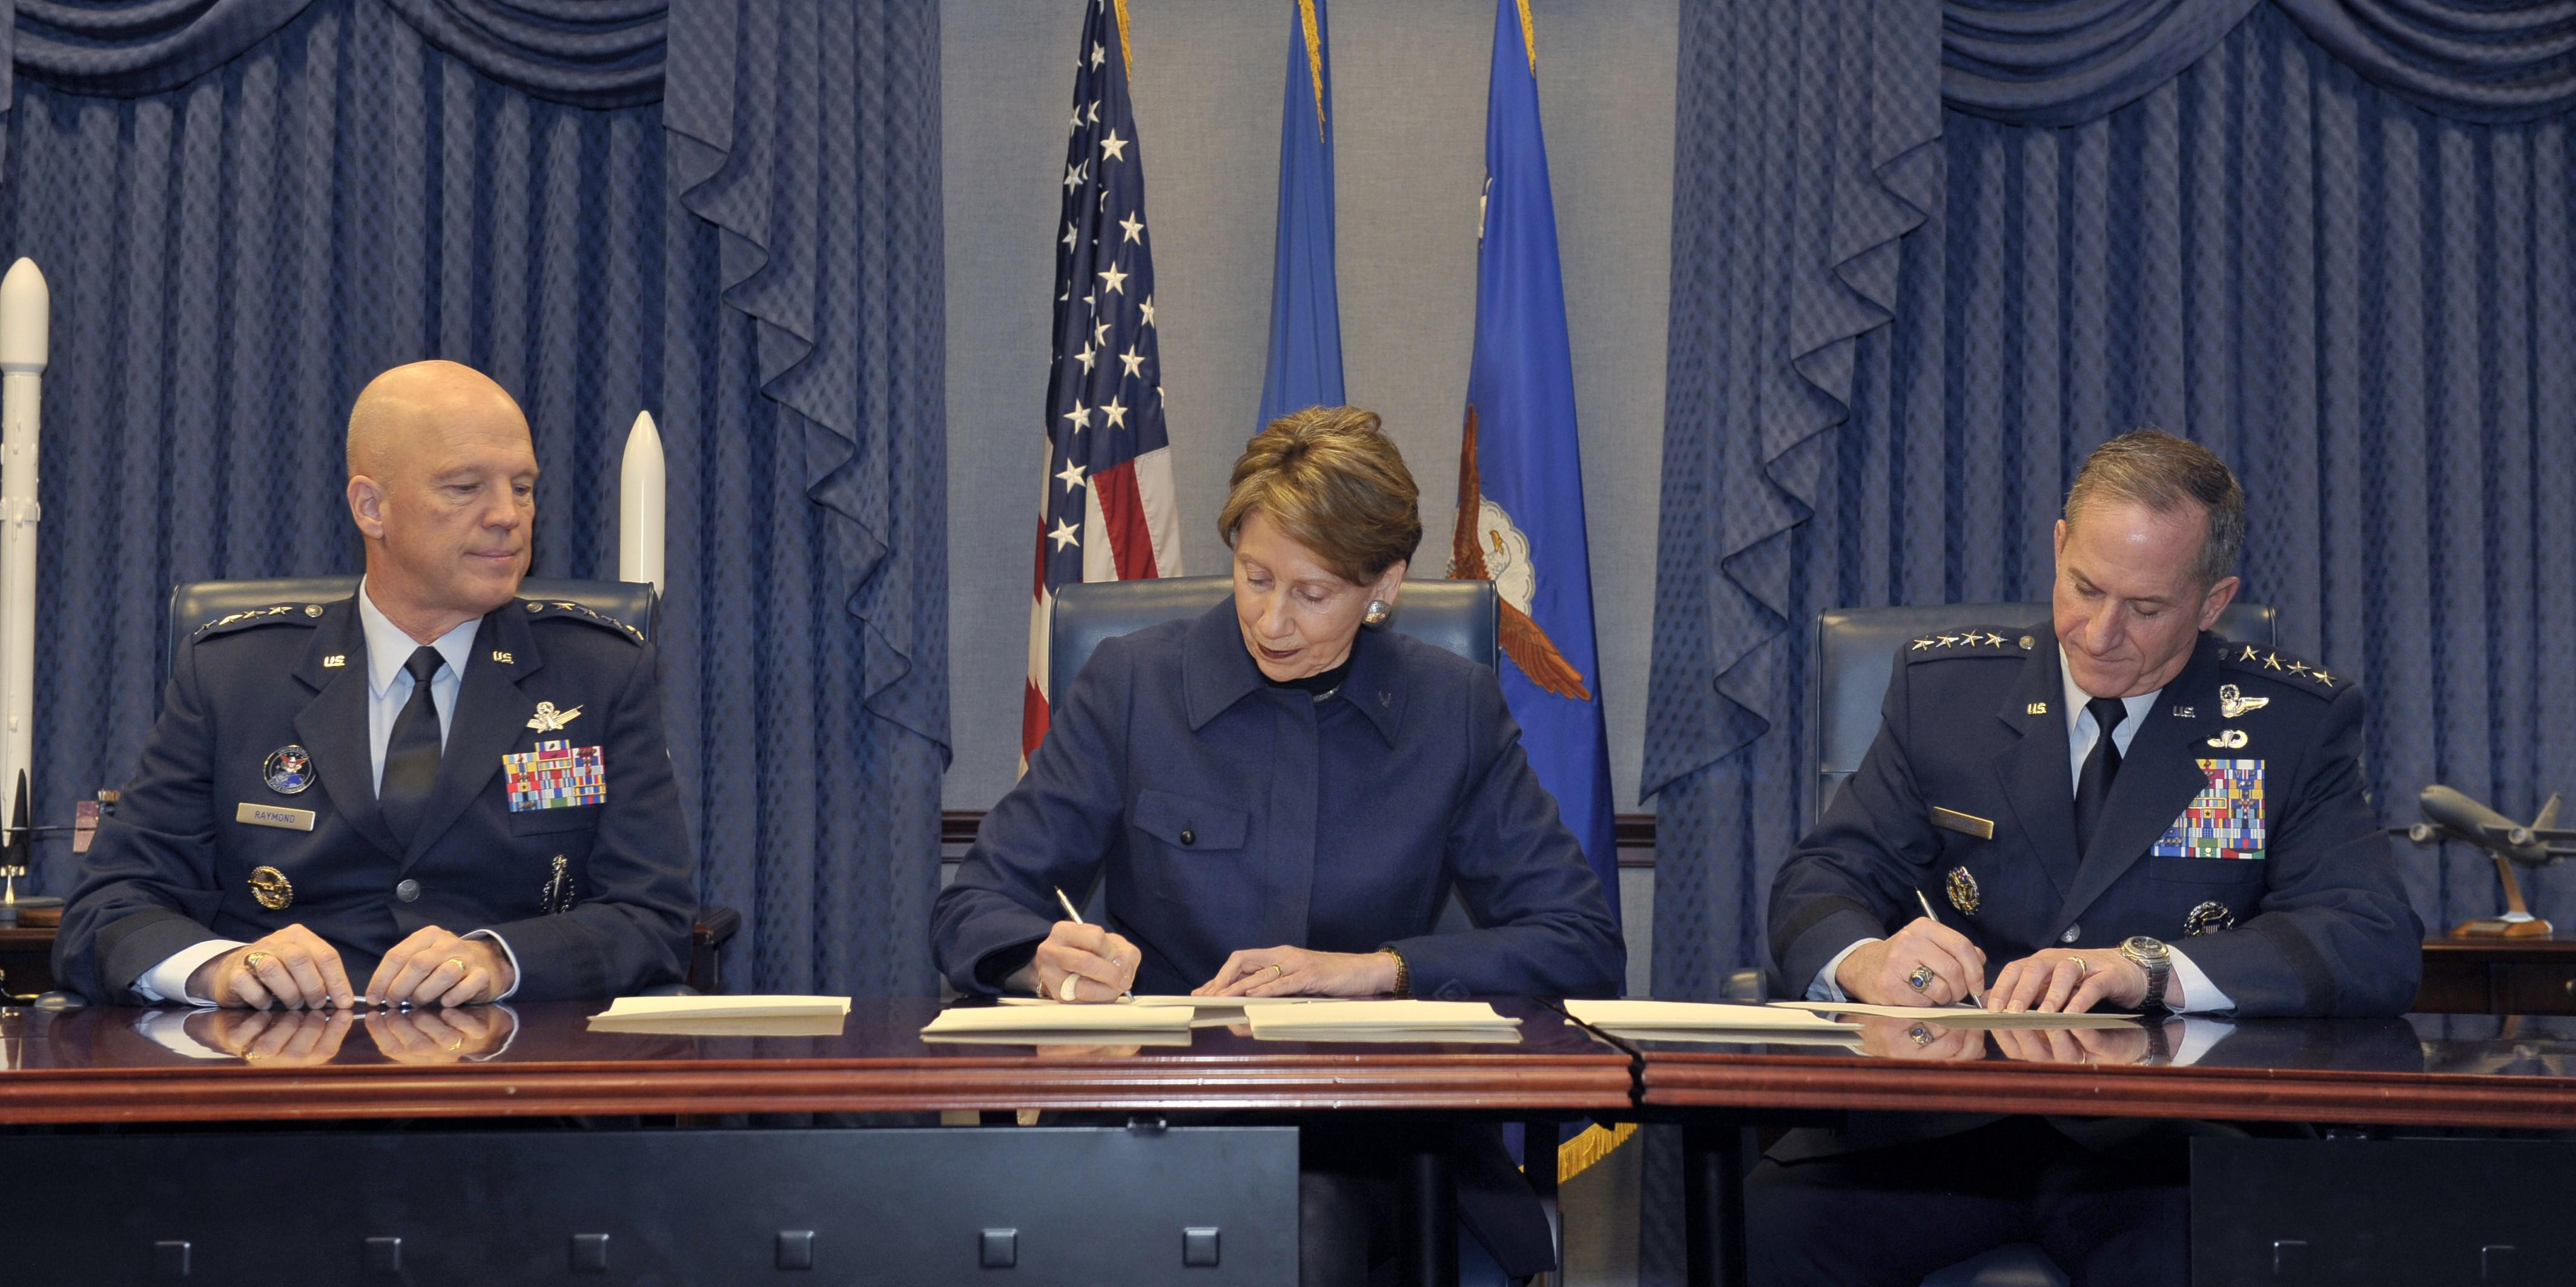 The U.S. Space Force will grow to about 16,000 warfighters, civilians and contractors. Top military leaders, including, Gen. John Raymond (l), commander of United States Space Command and Air Force Space Command; Secretary of the Air Force Barbara Barrett (c); and previous Chief of Staff of the Air Force Gen. David L. Goldfein, sign memorandums to authorize the service last December. Credit: Secretary of the Air Force Public Affairs, Photo by Tech. Sgt. Robert Barnett